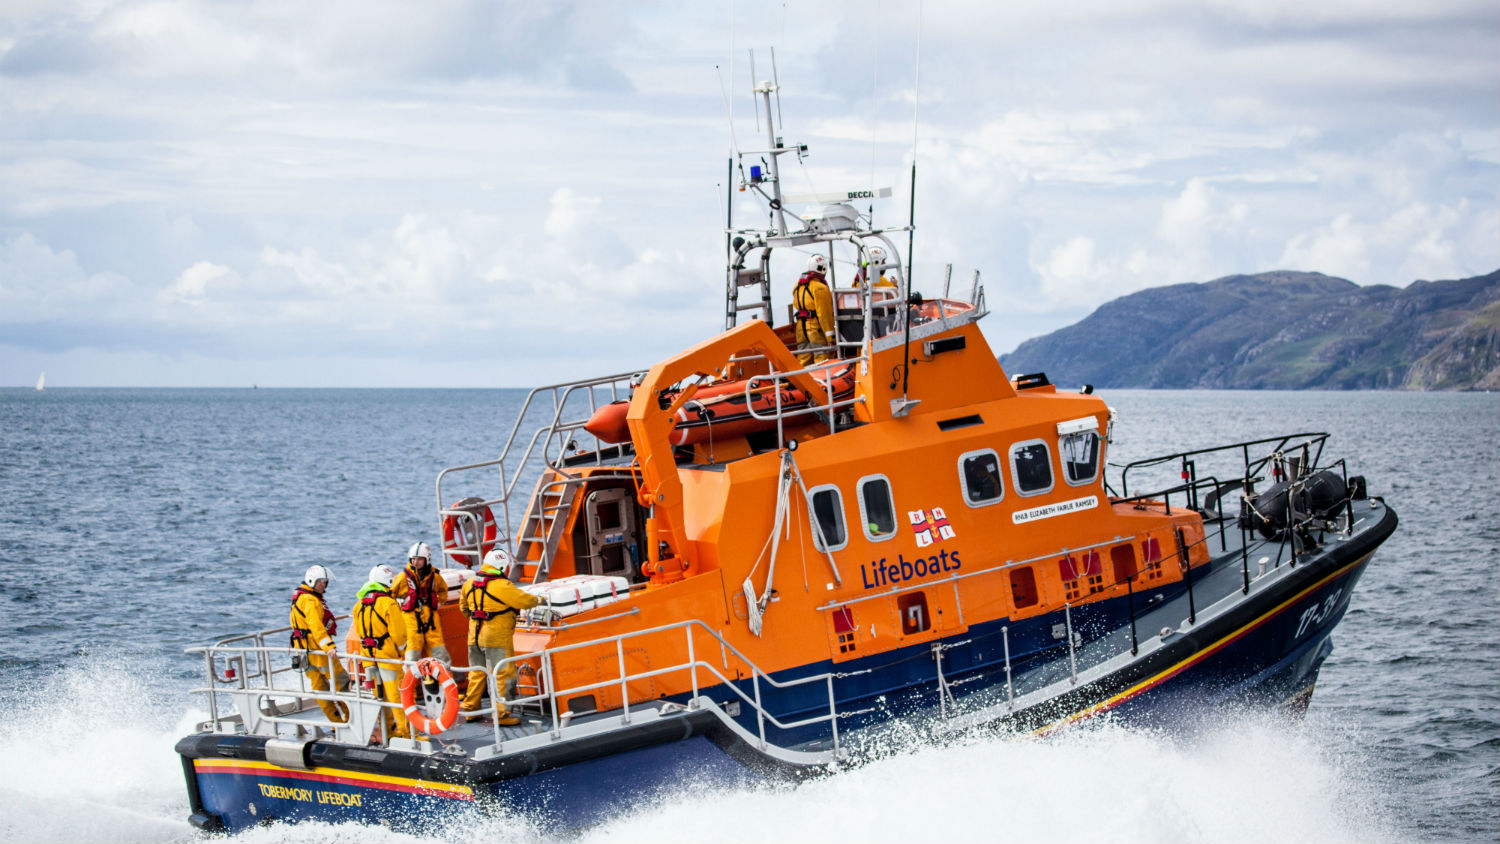 Toberymory's Severn class lifeboat powering through waves